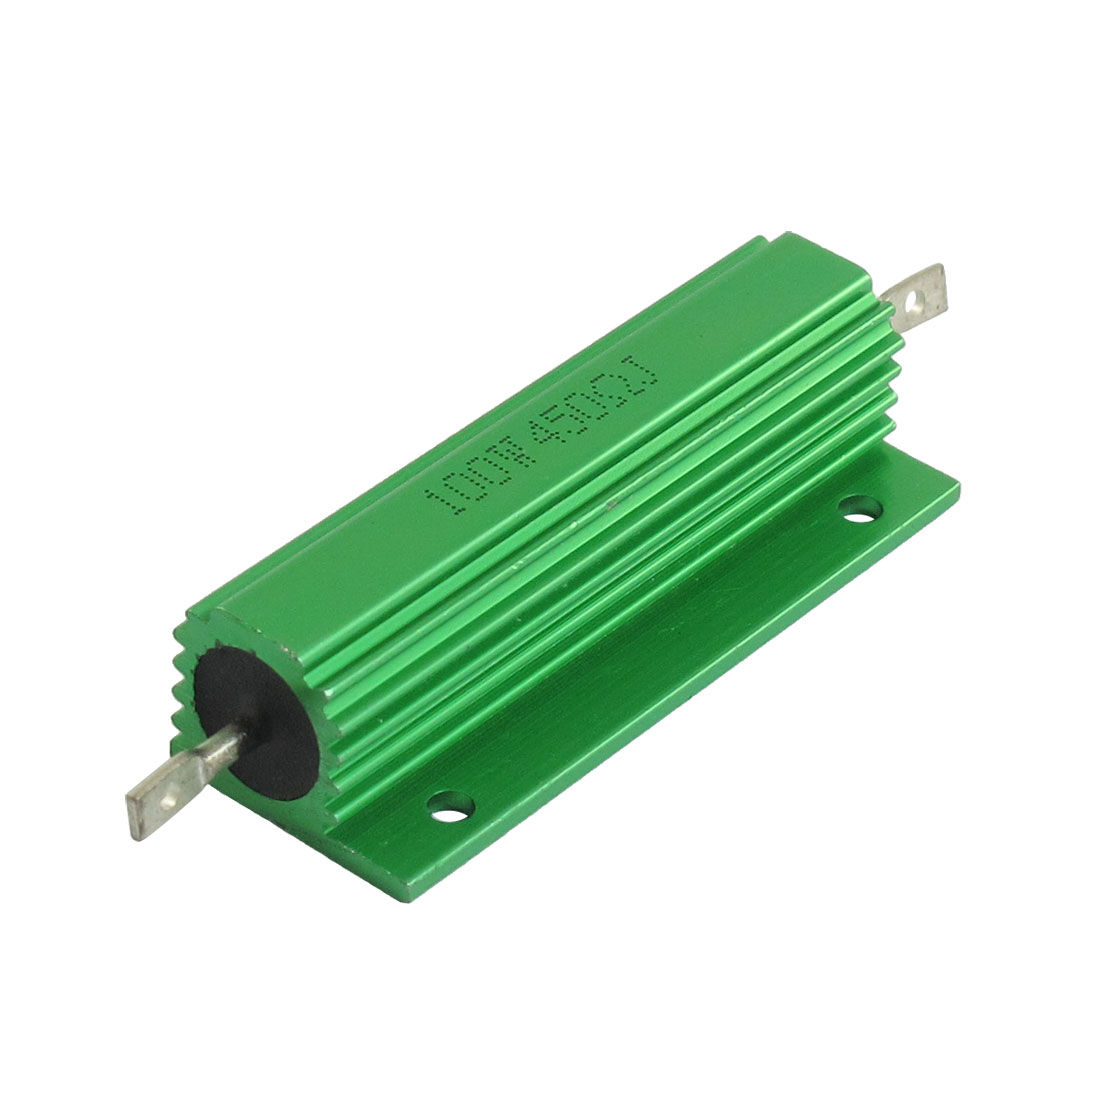 Green Aluminium Housed Wirewound Power Resistor 100W 450 Ohm